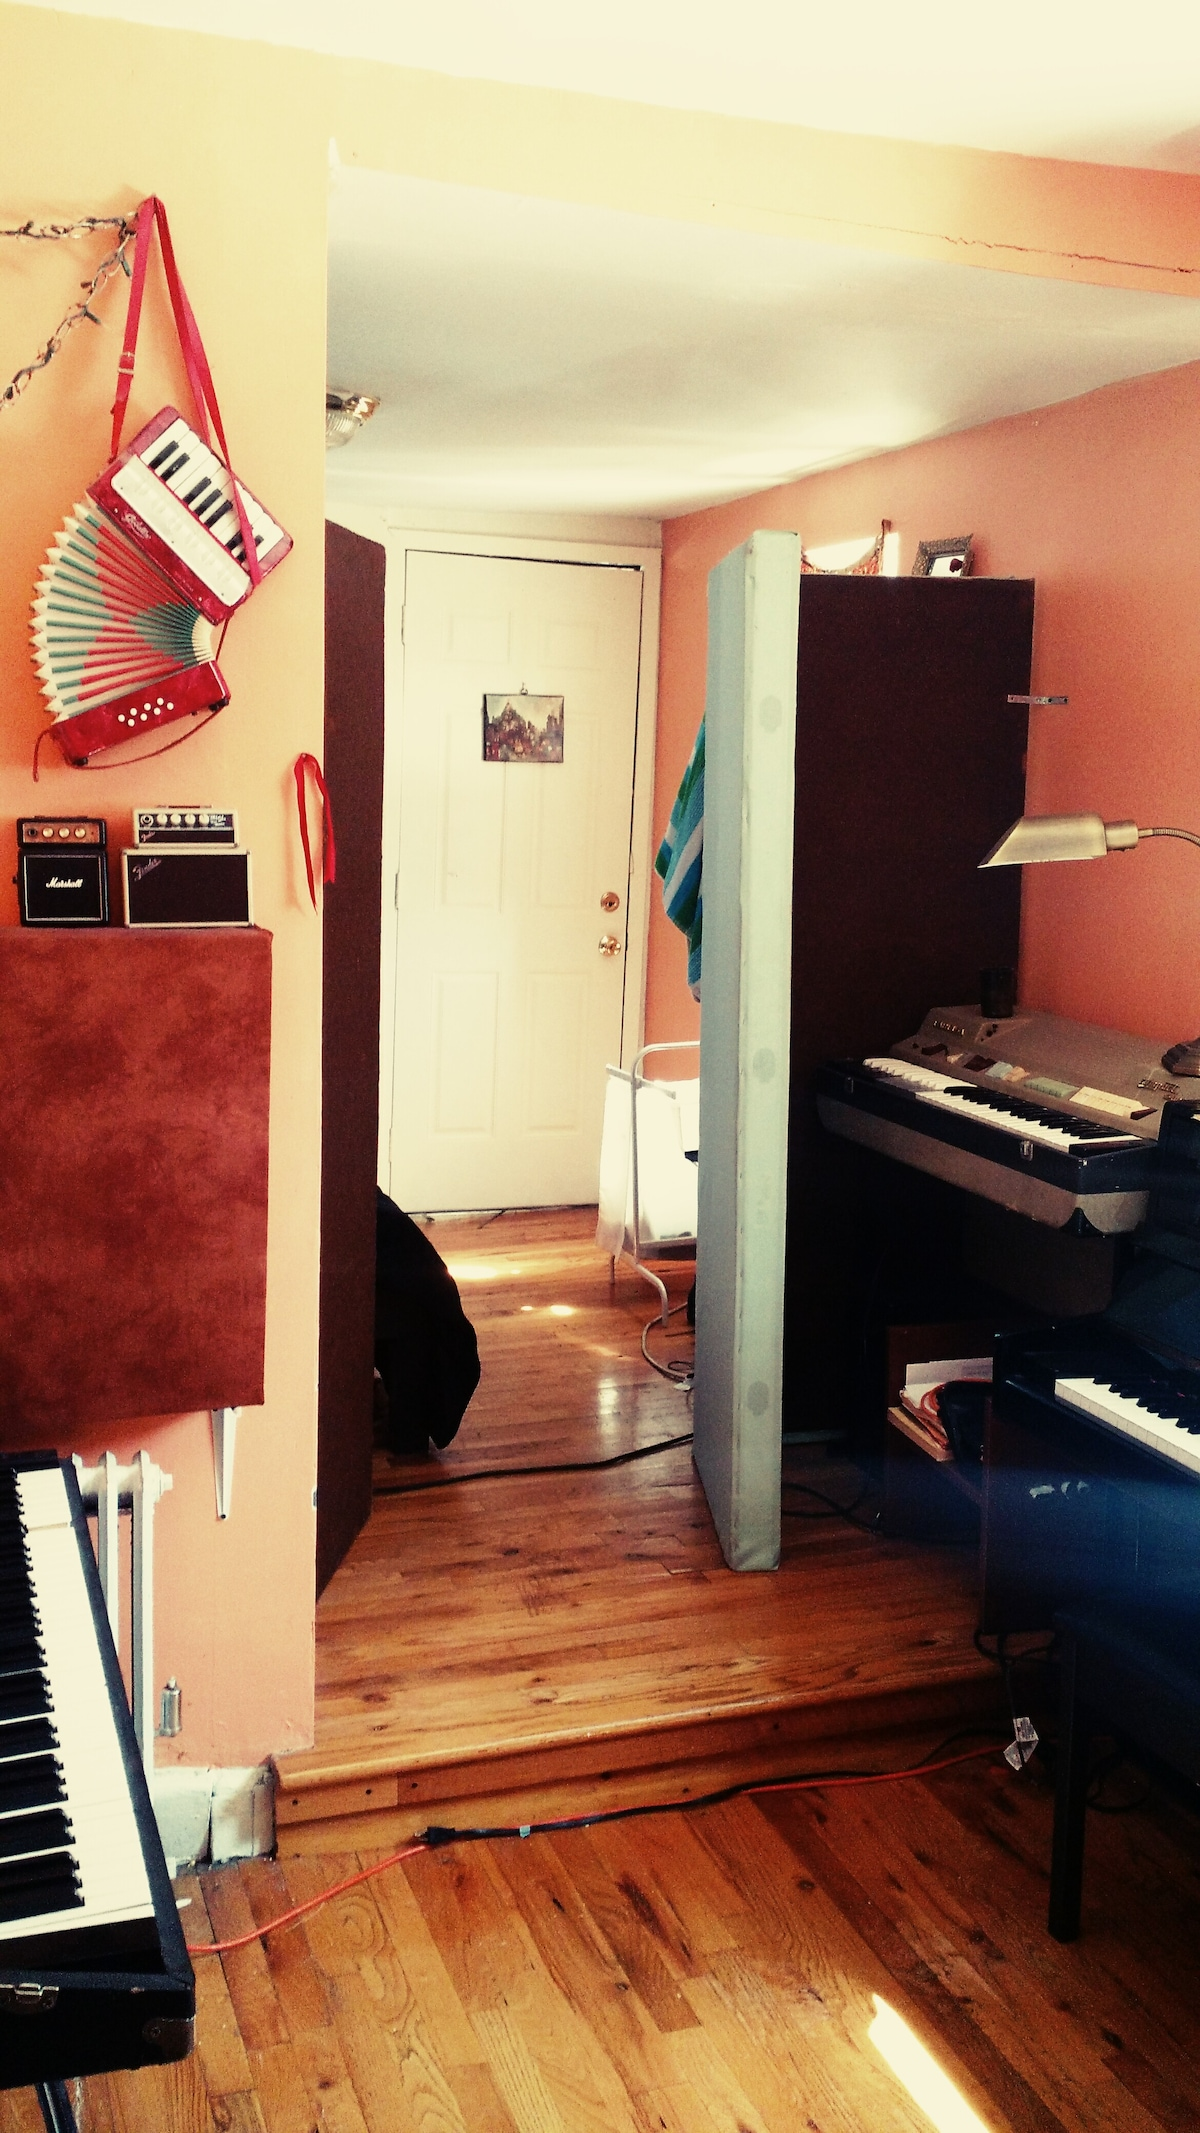 Willyburg Bedroom w/ Upright Piano